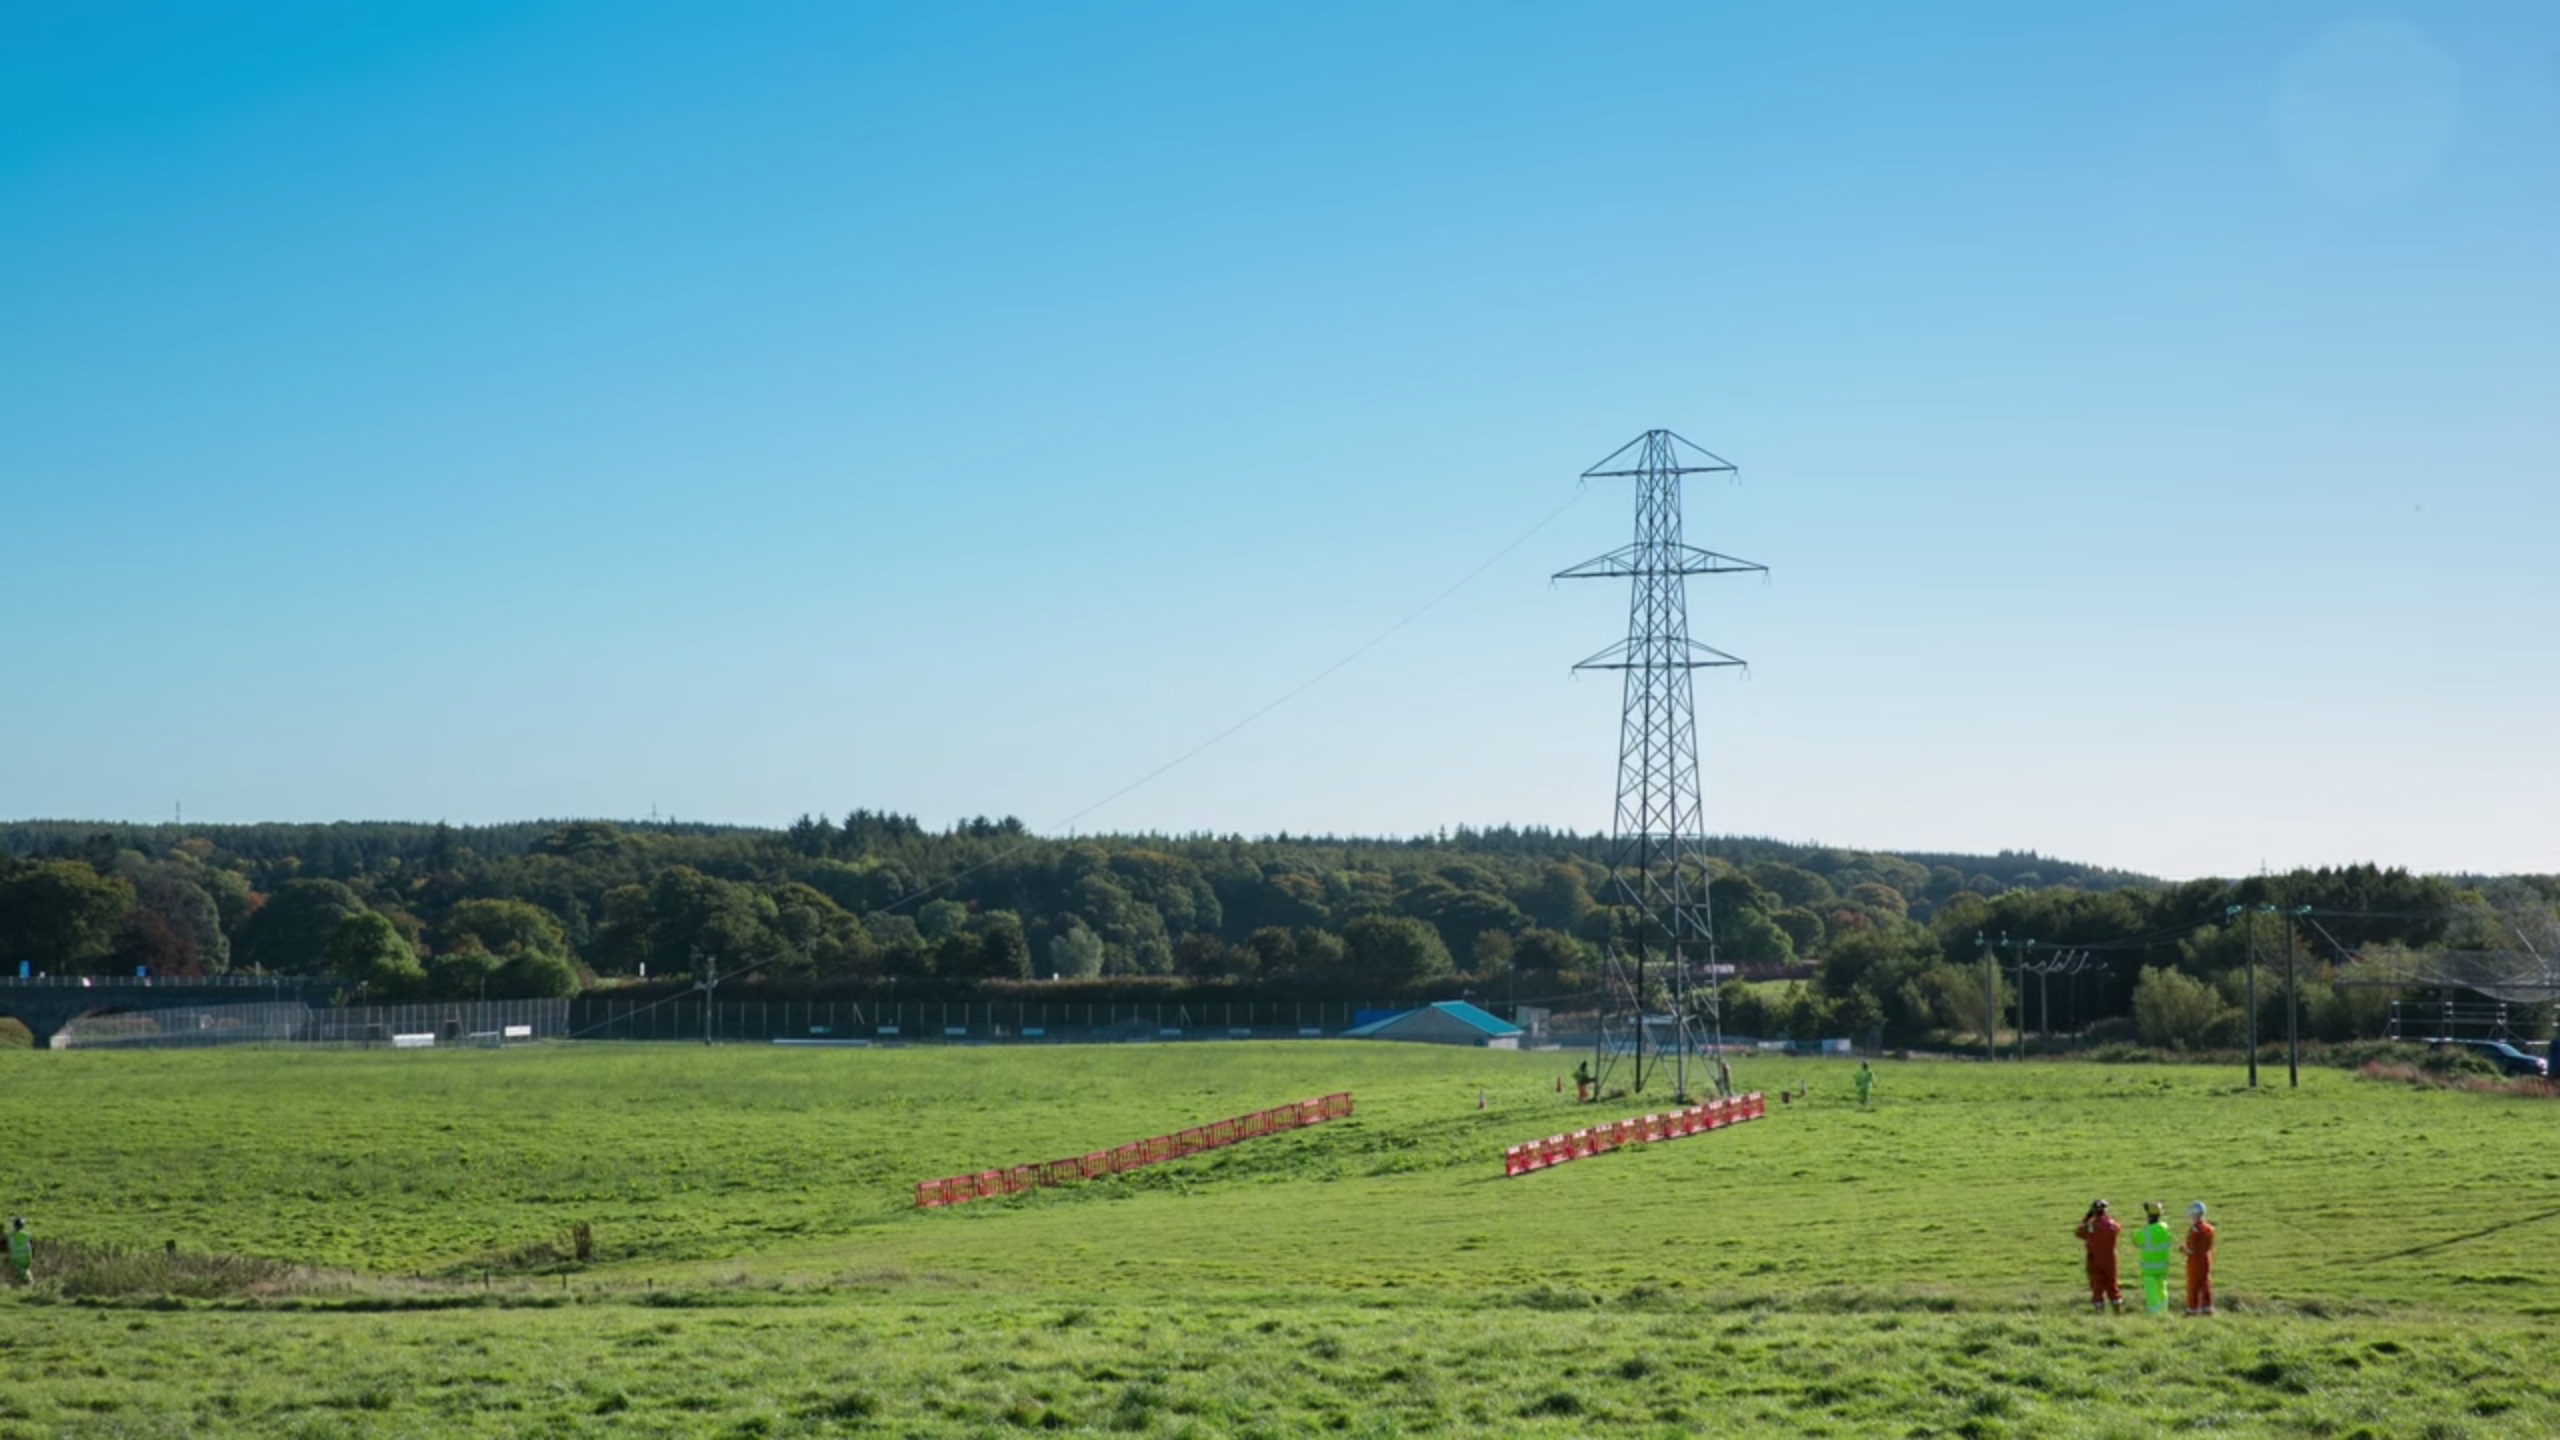 A pylon being removed as part of the AWPR project near Aberdeen